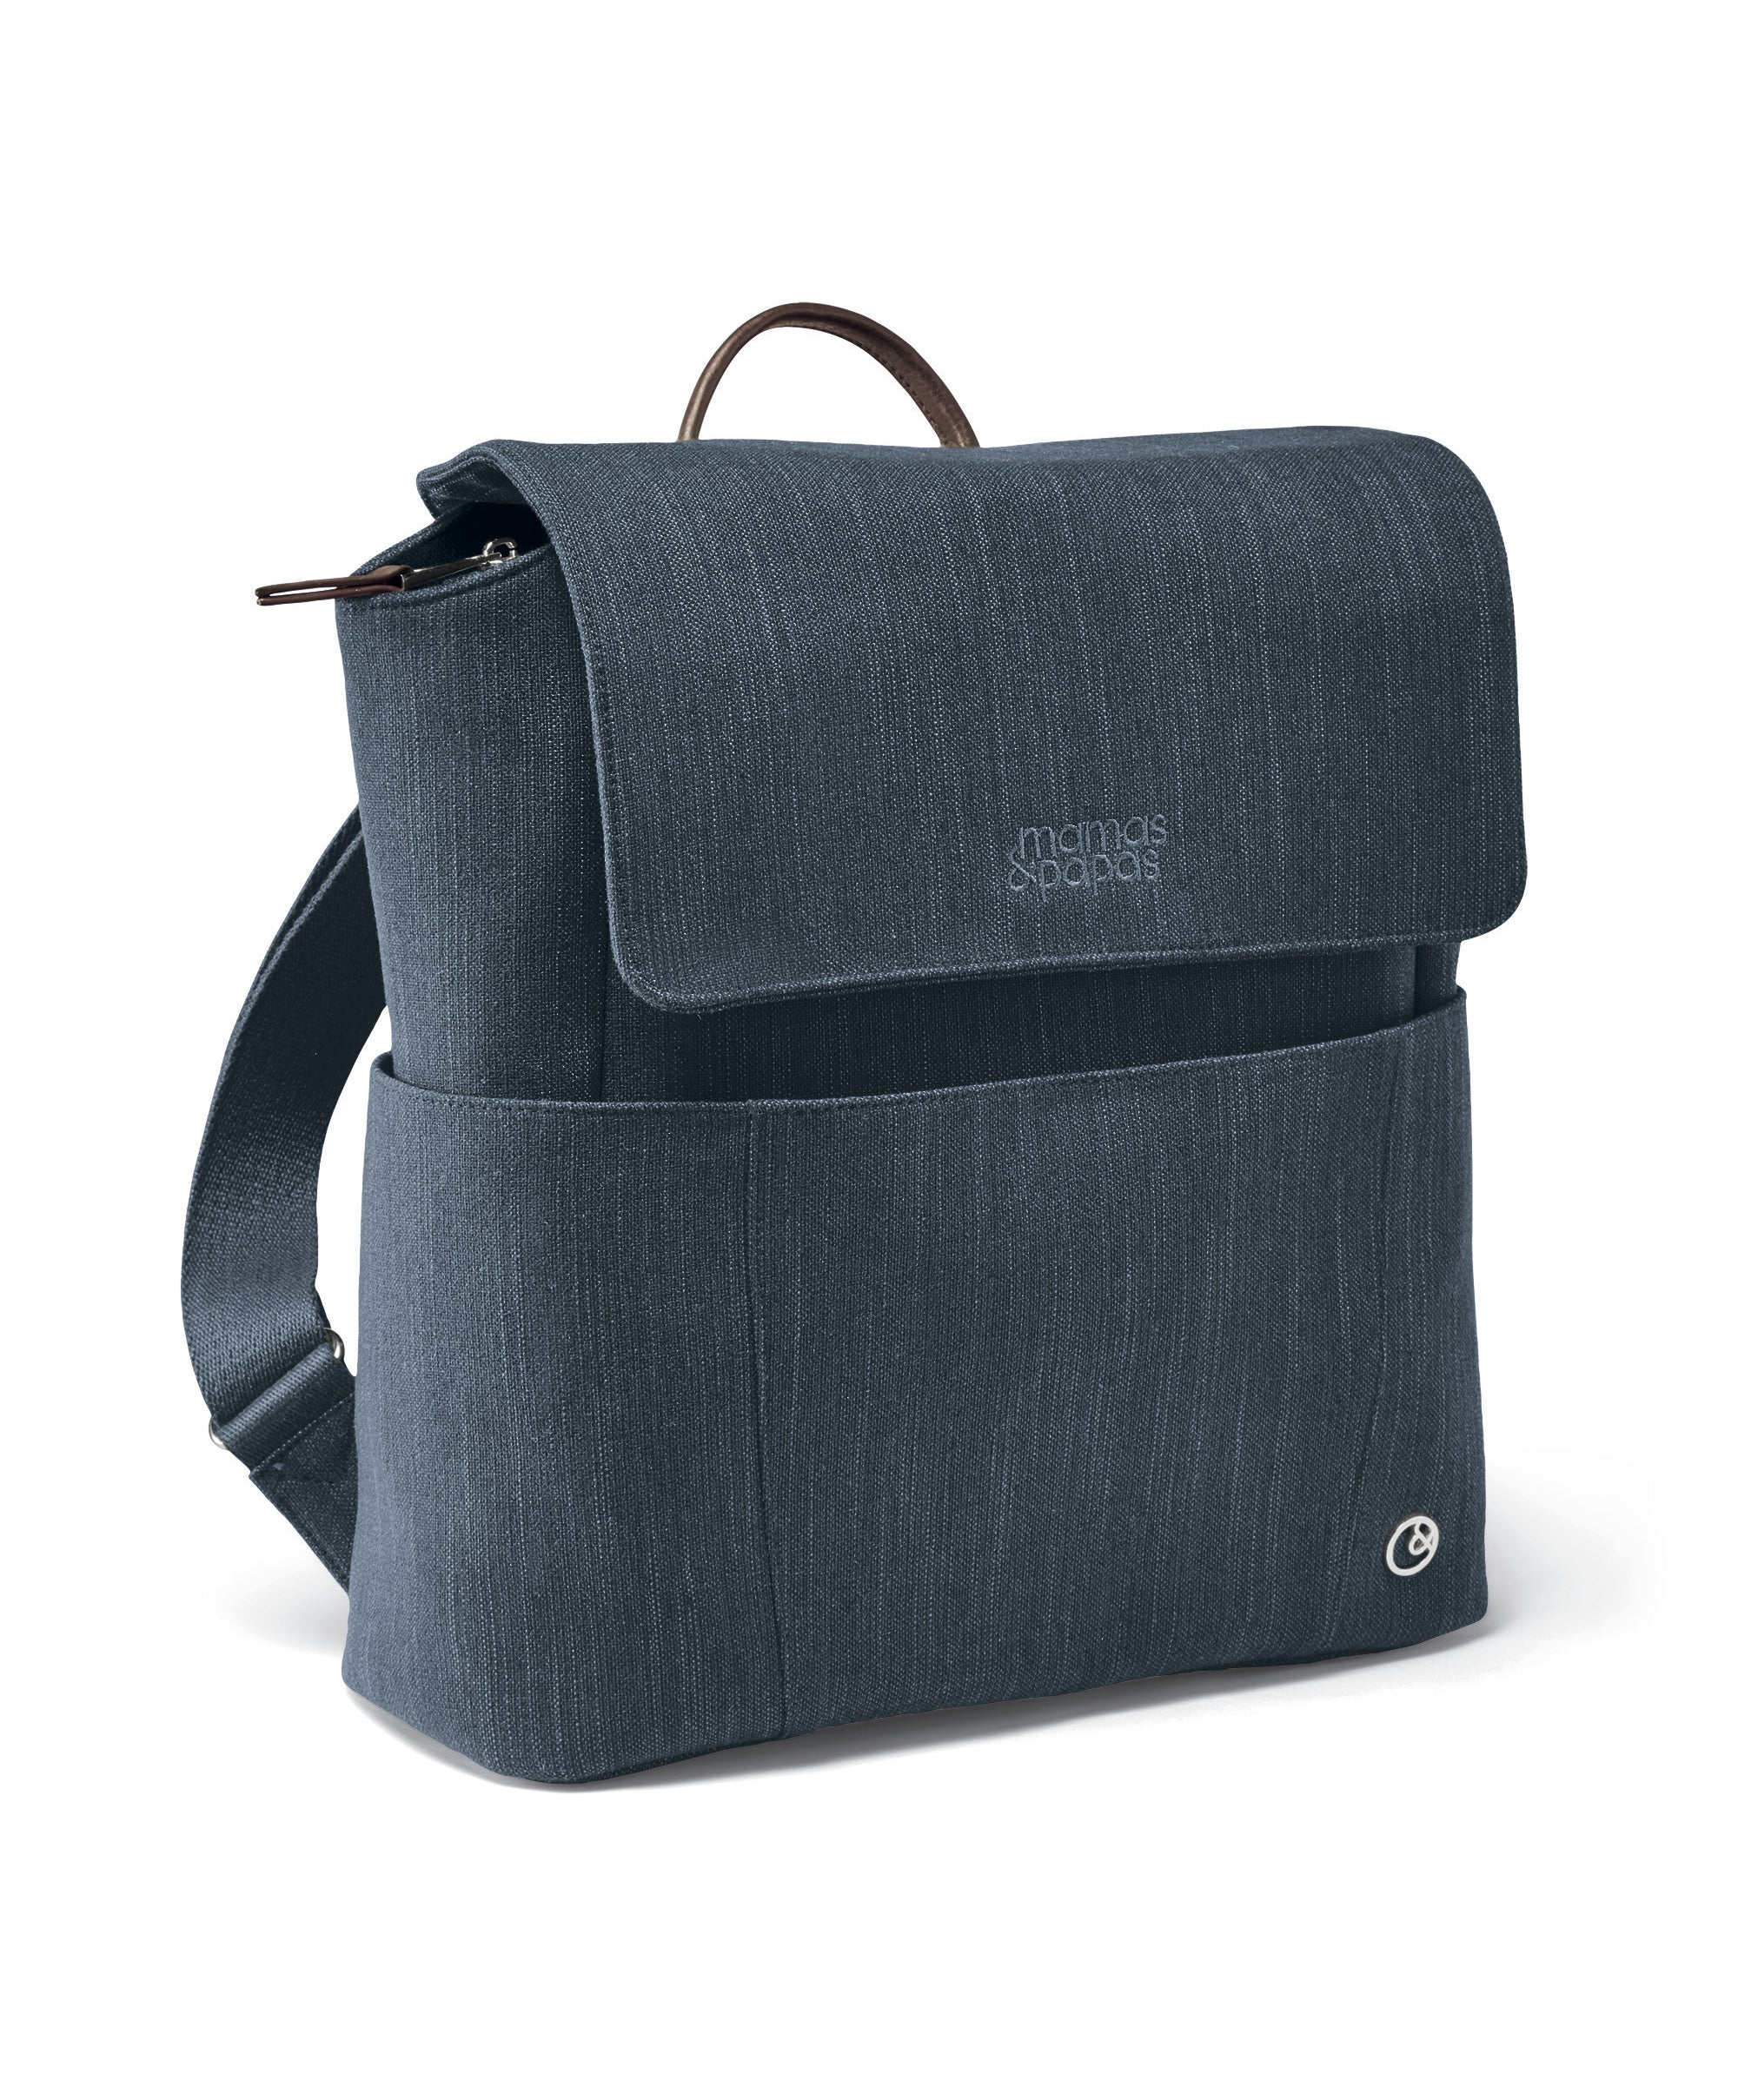 Strada Changing Bag